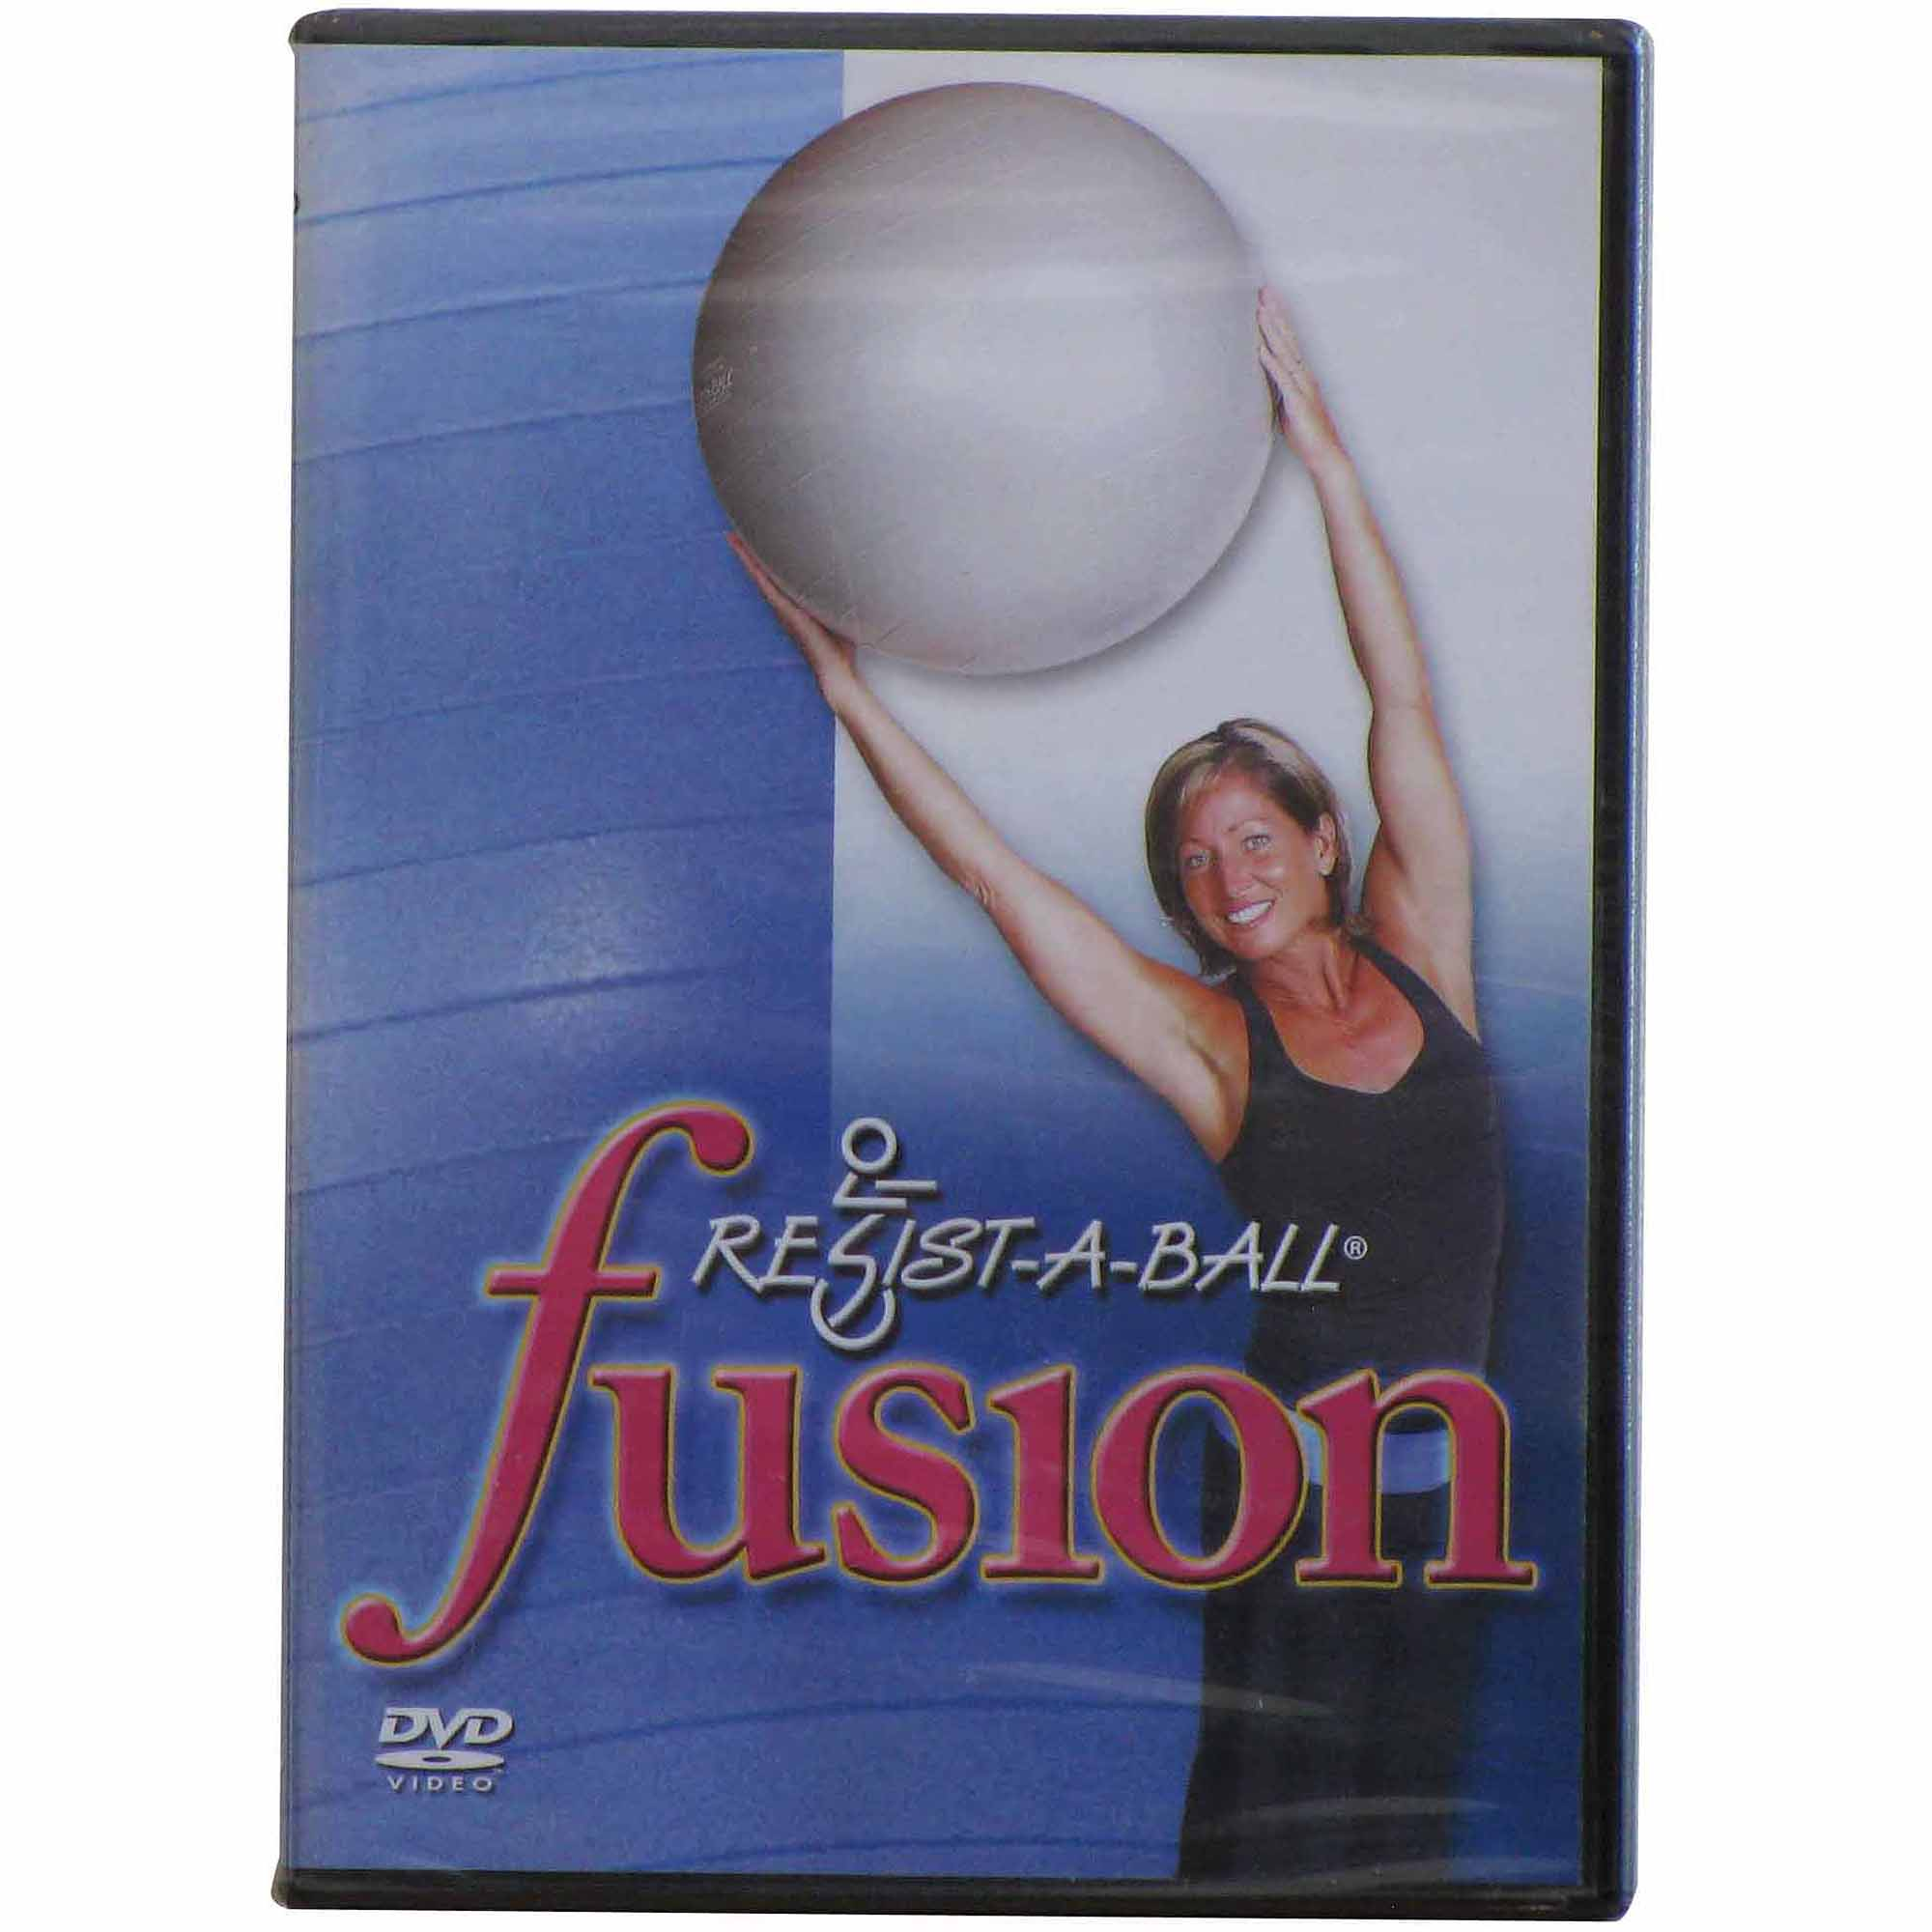 Resist-A-Ball Fusion Stability Ball Workout DVD